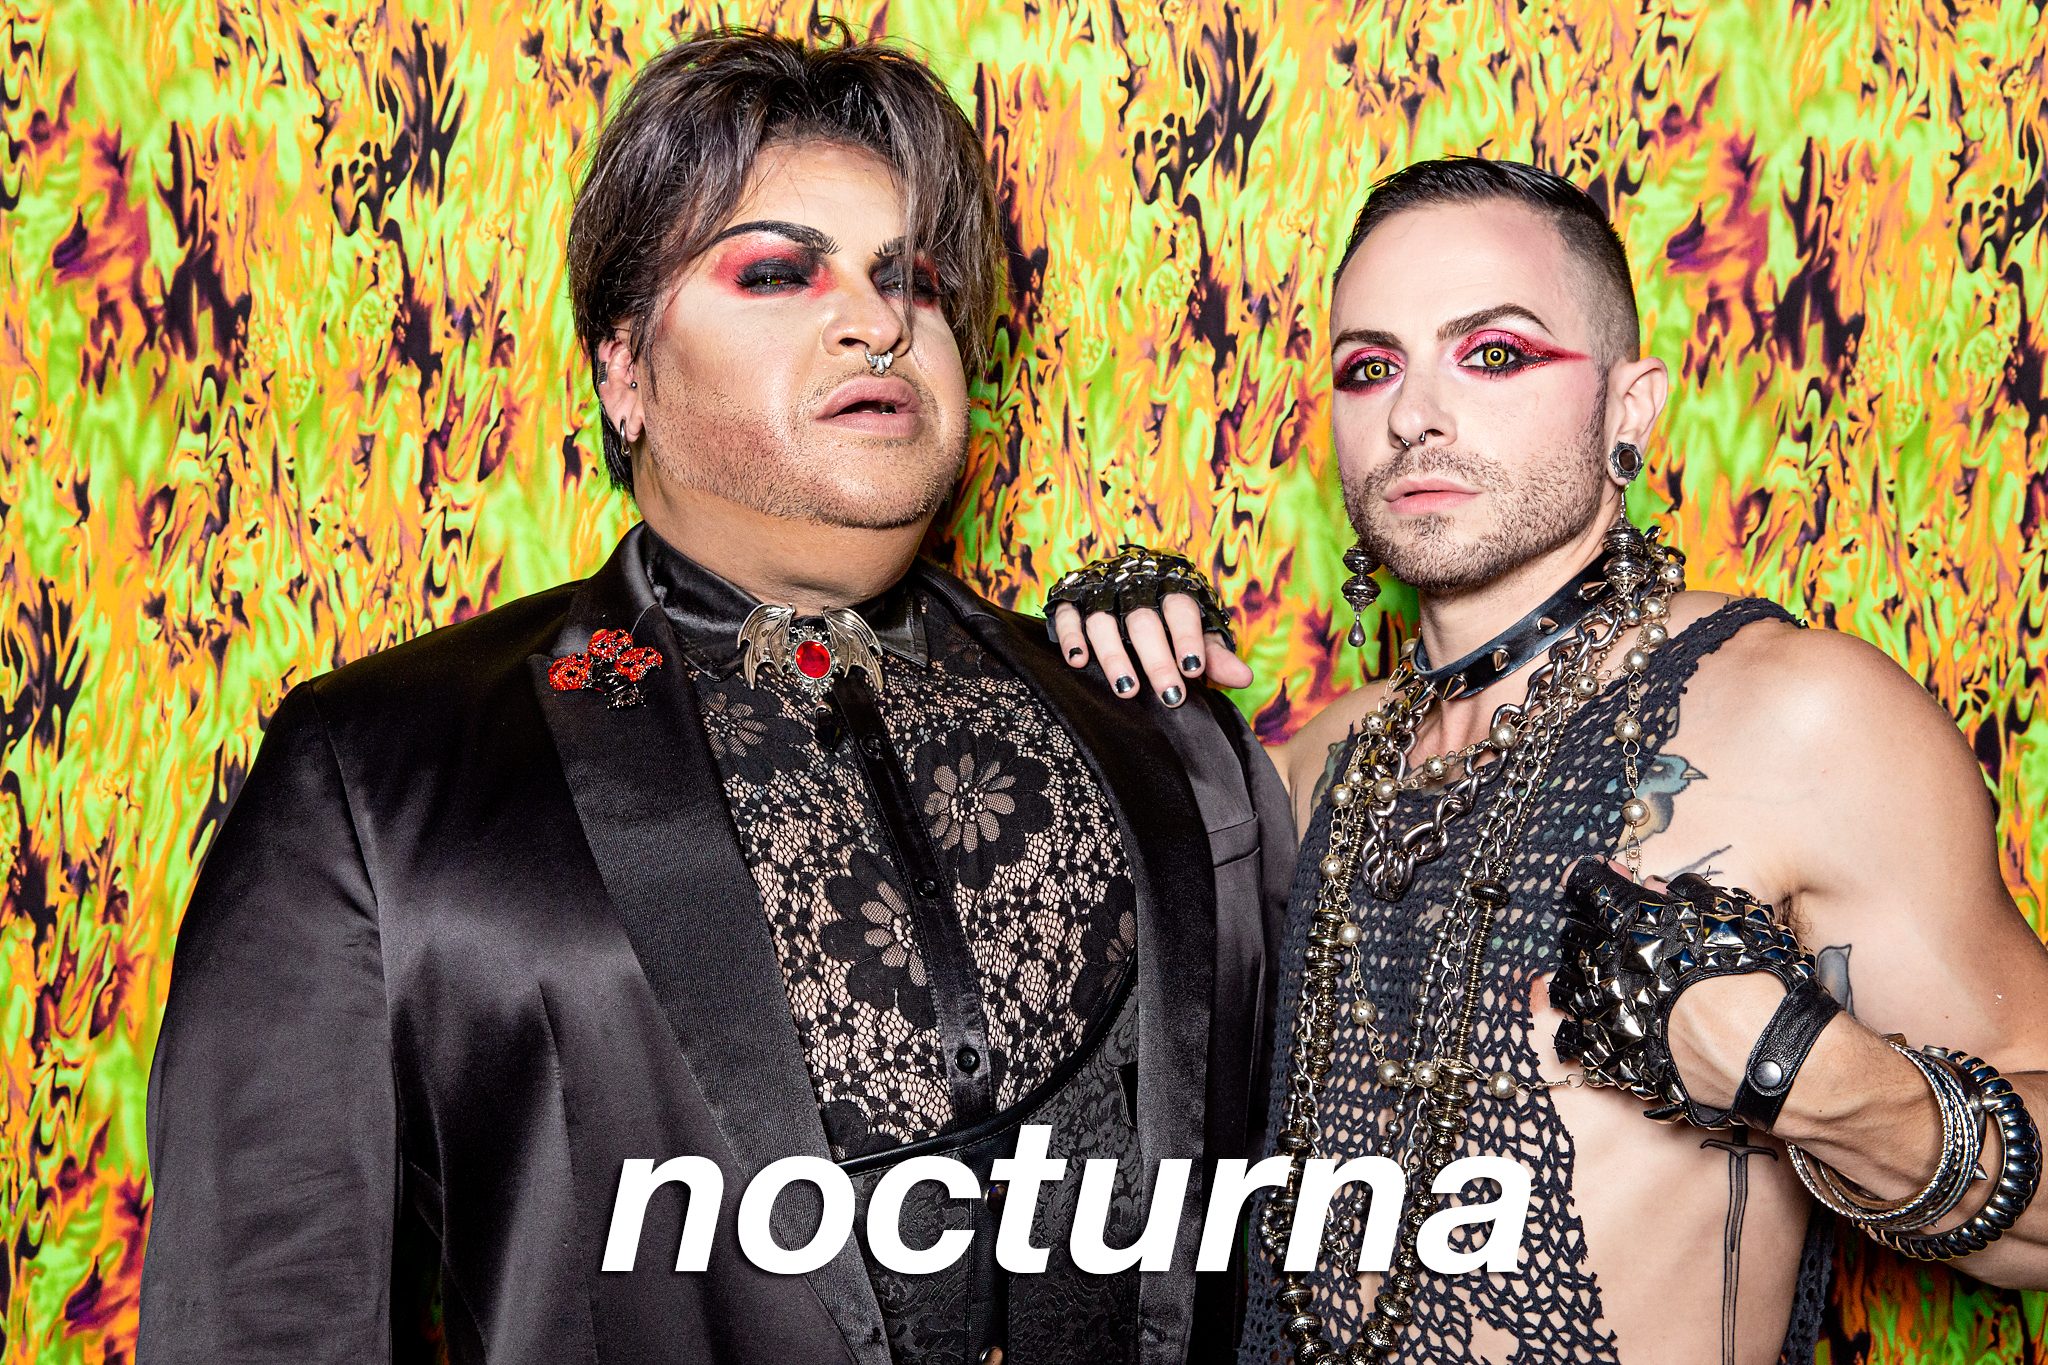 glitterguts portrait booth photos from nocturna in chicago, august 2021